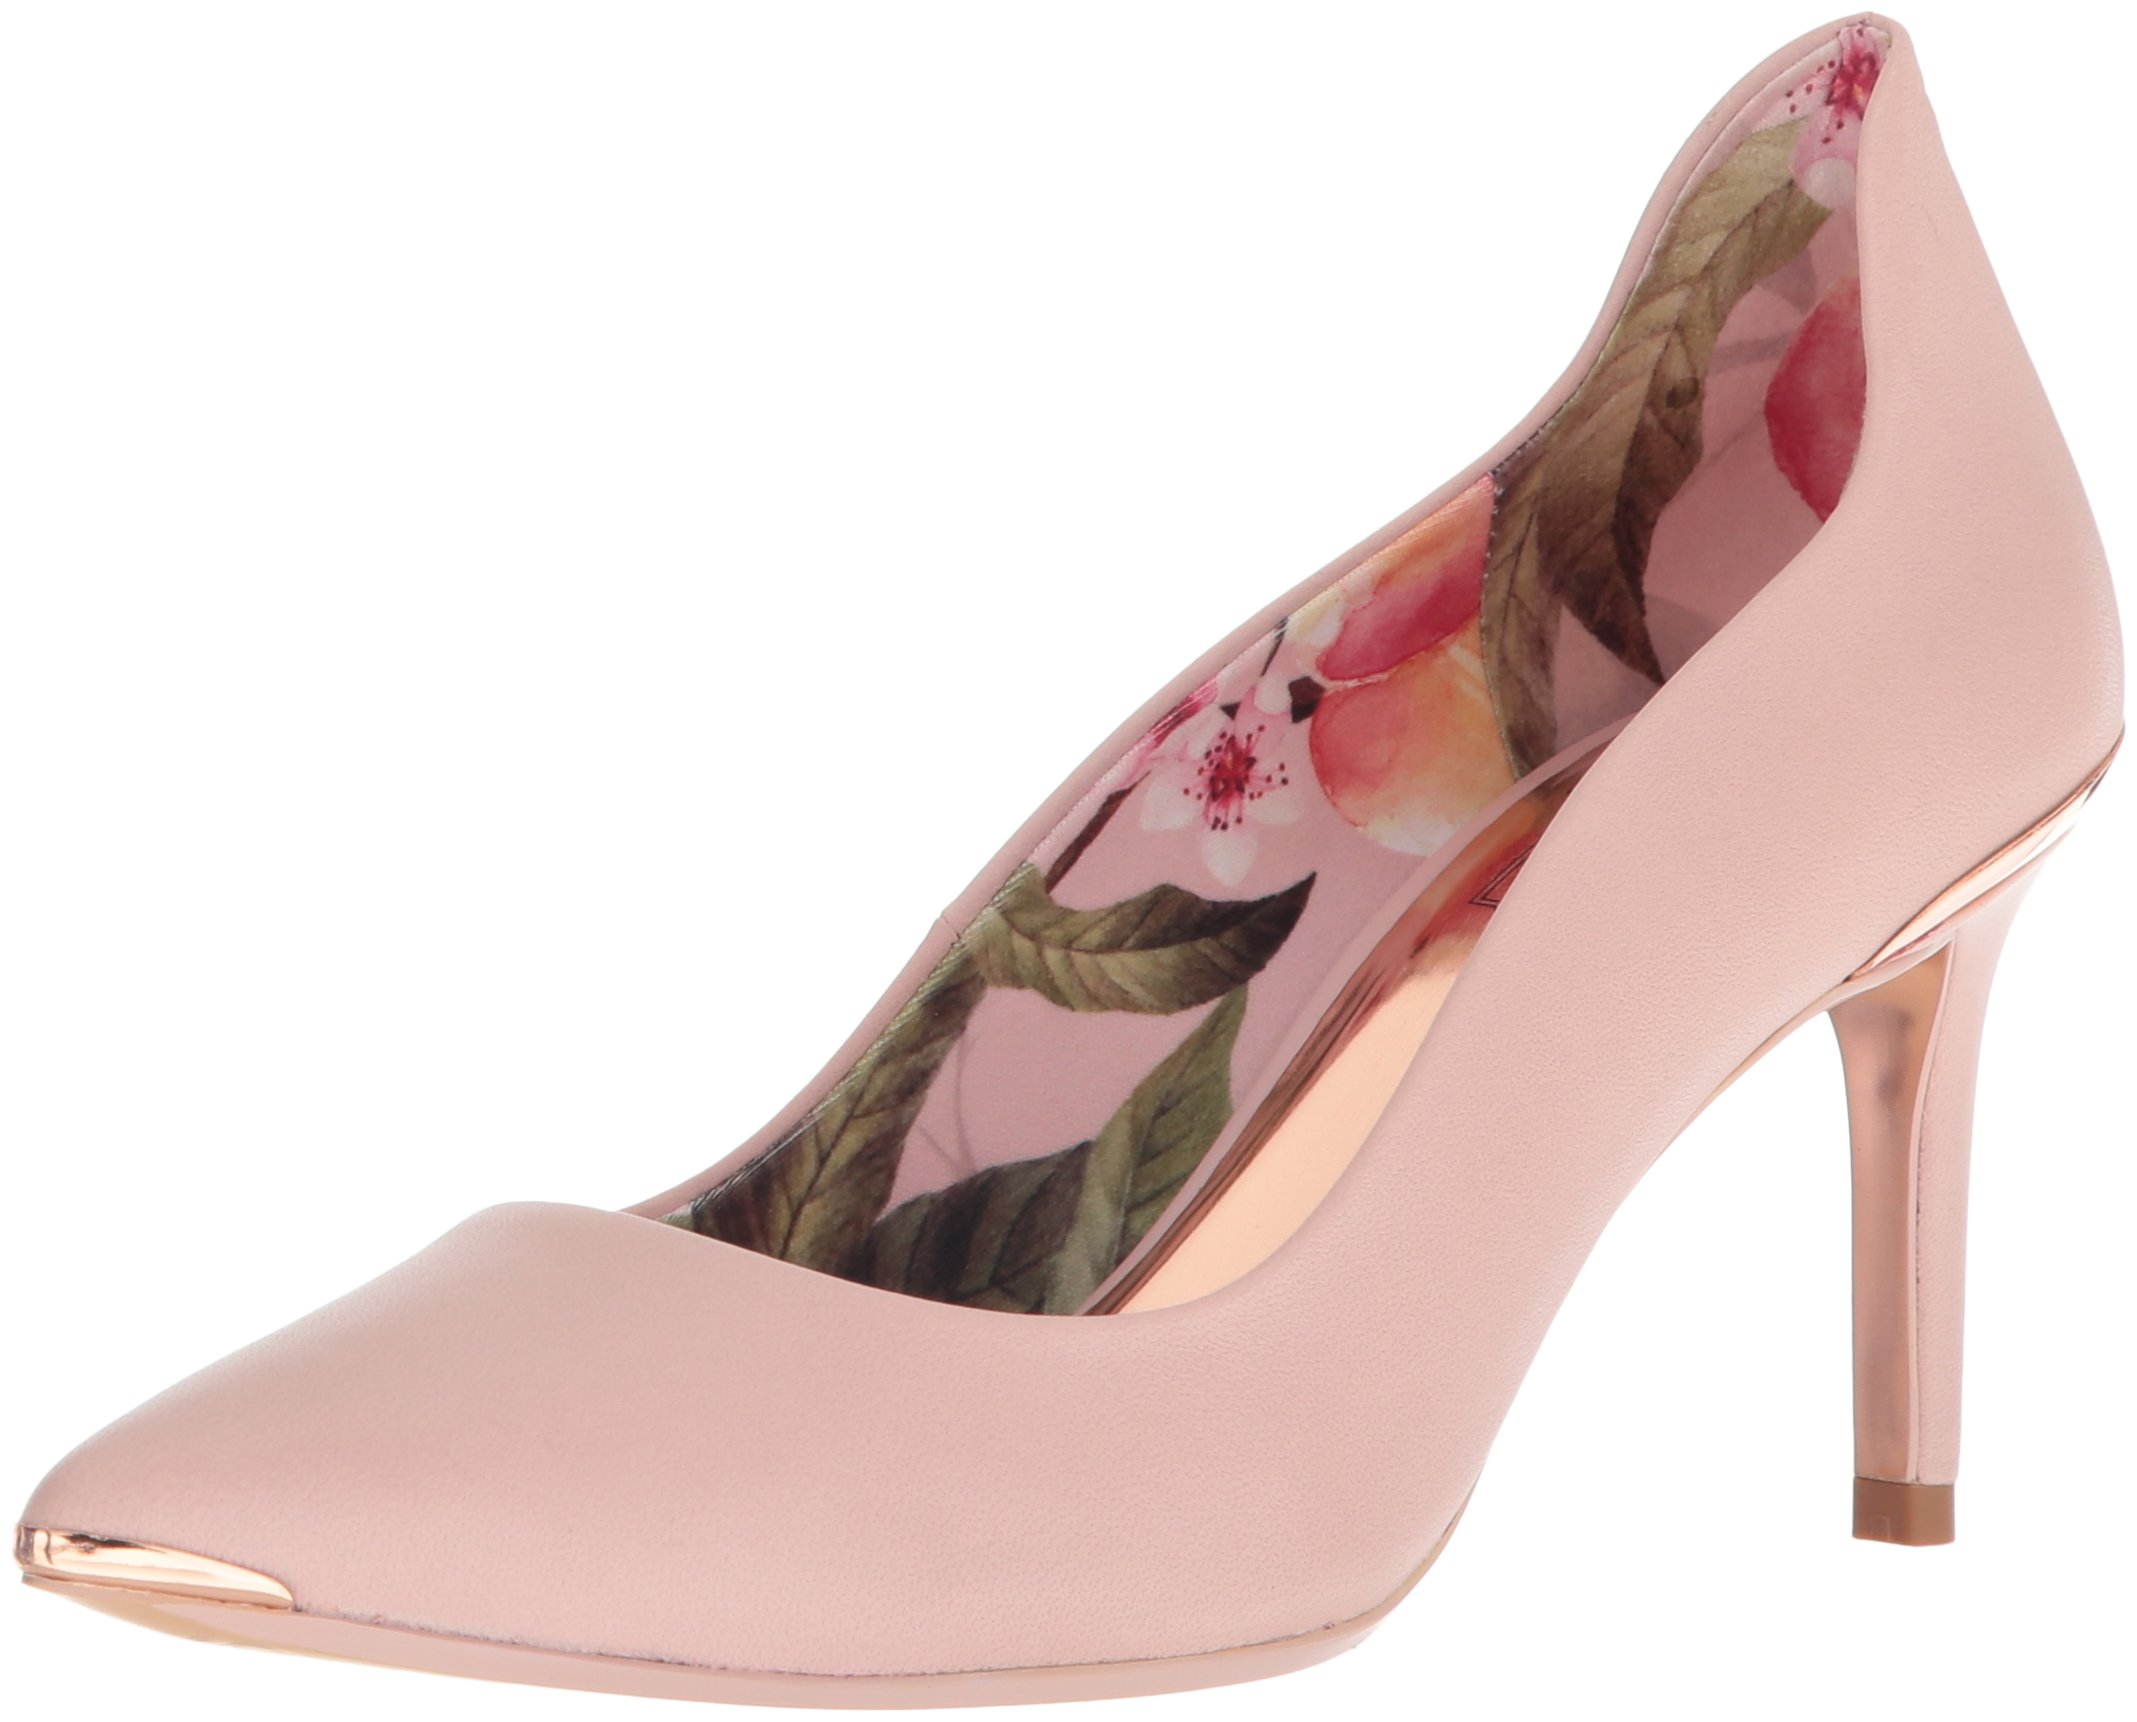 Ted Baker Women's Vyixyn Pump, Blossom Pink Leather Blossom Print Lining, 8.5 Medium US